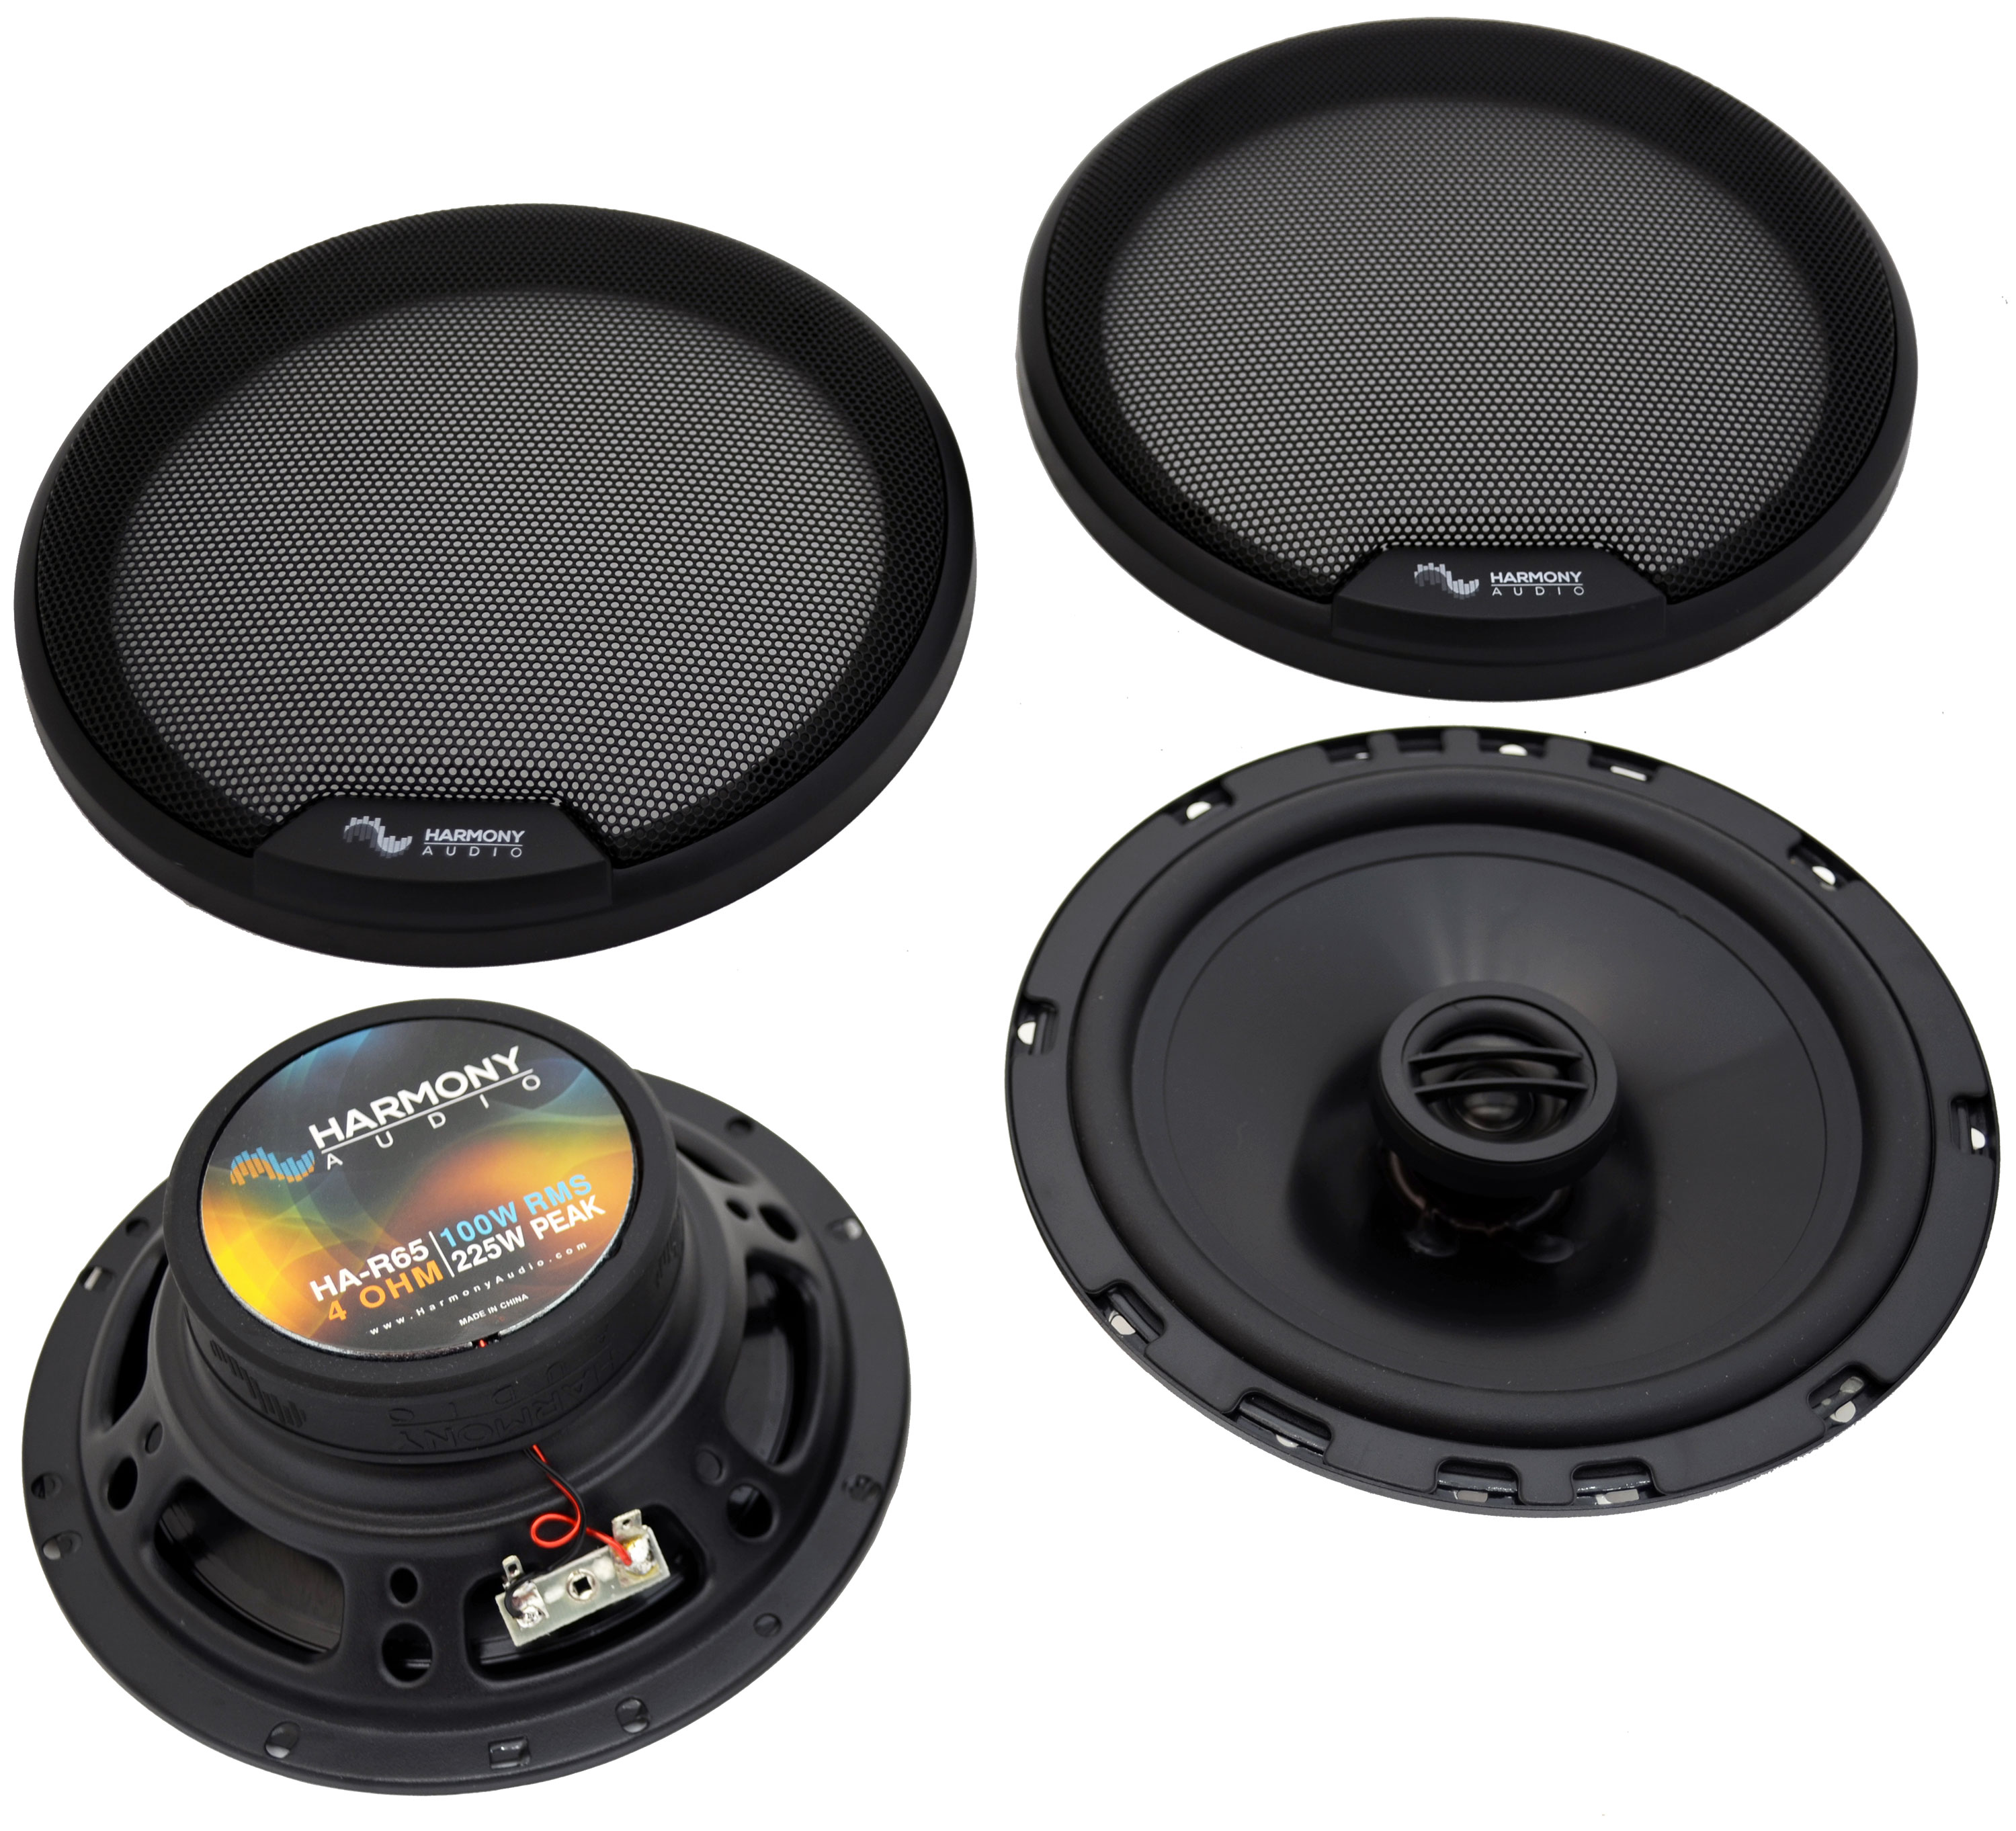 Fits Daewoo Lanos 1999-2002 Rear Deck Replacement Harmony HA-R65 Speakers New